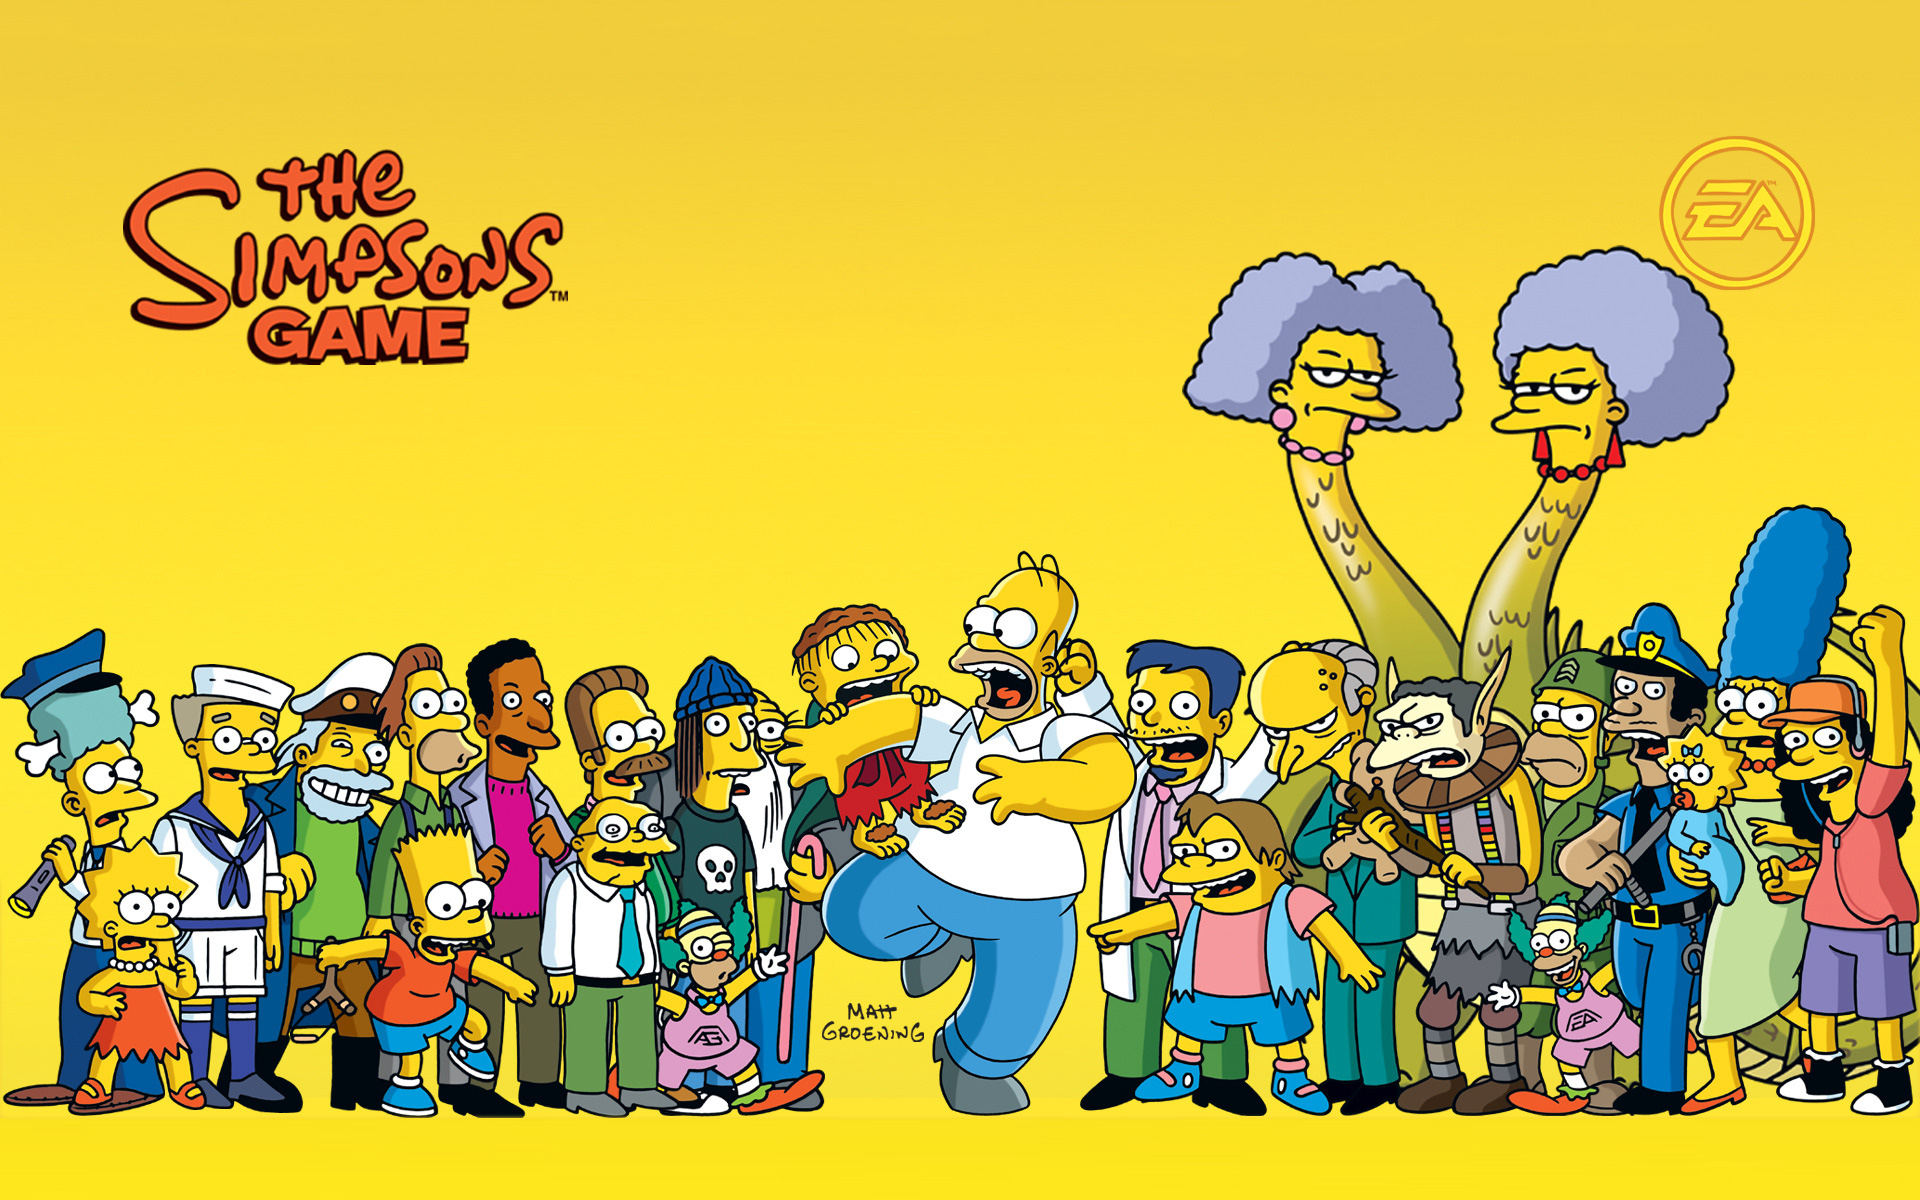 The Simpsons Game Wallpaper in 1920x1200